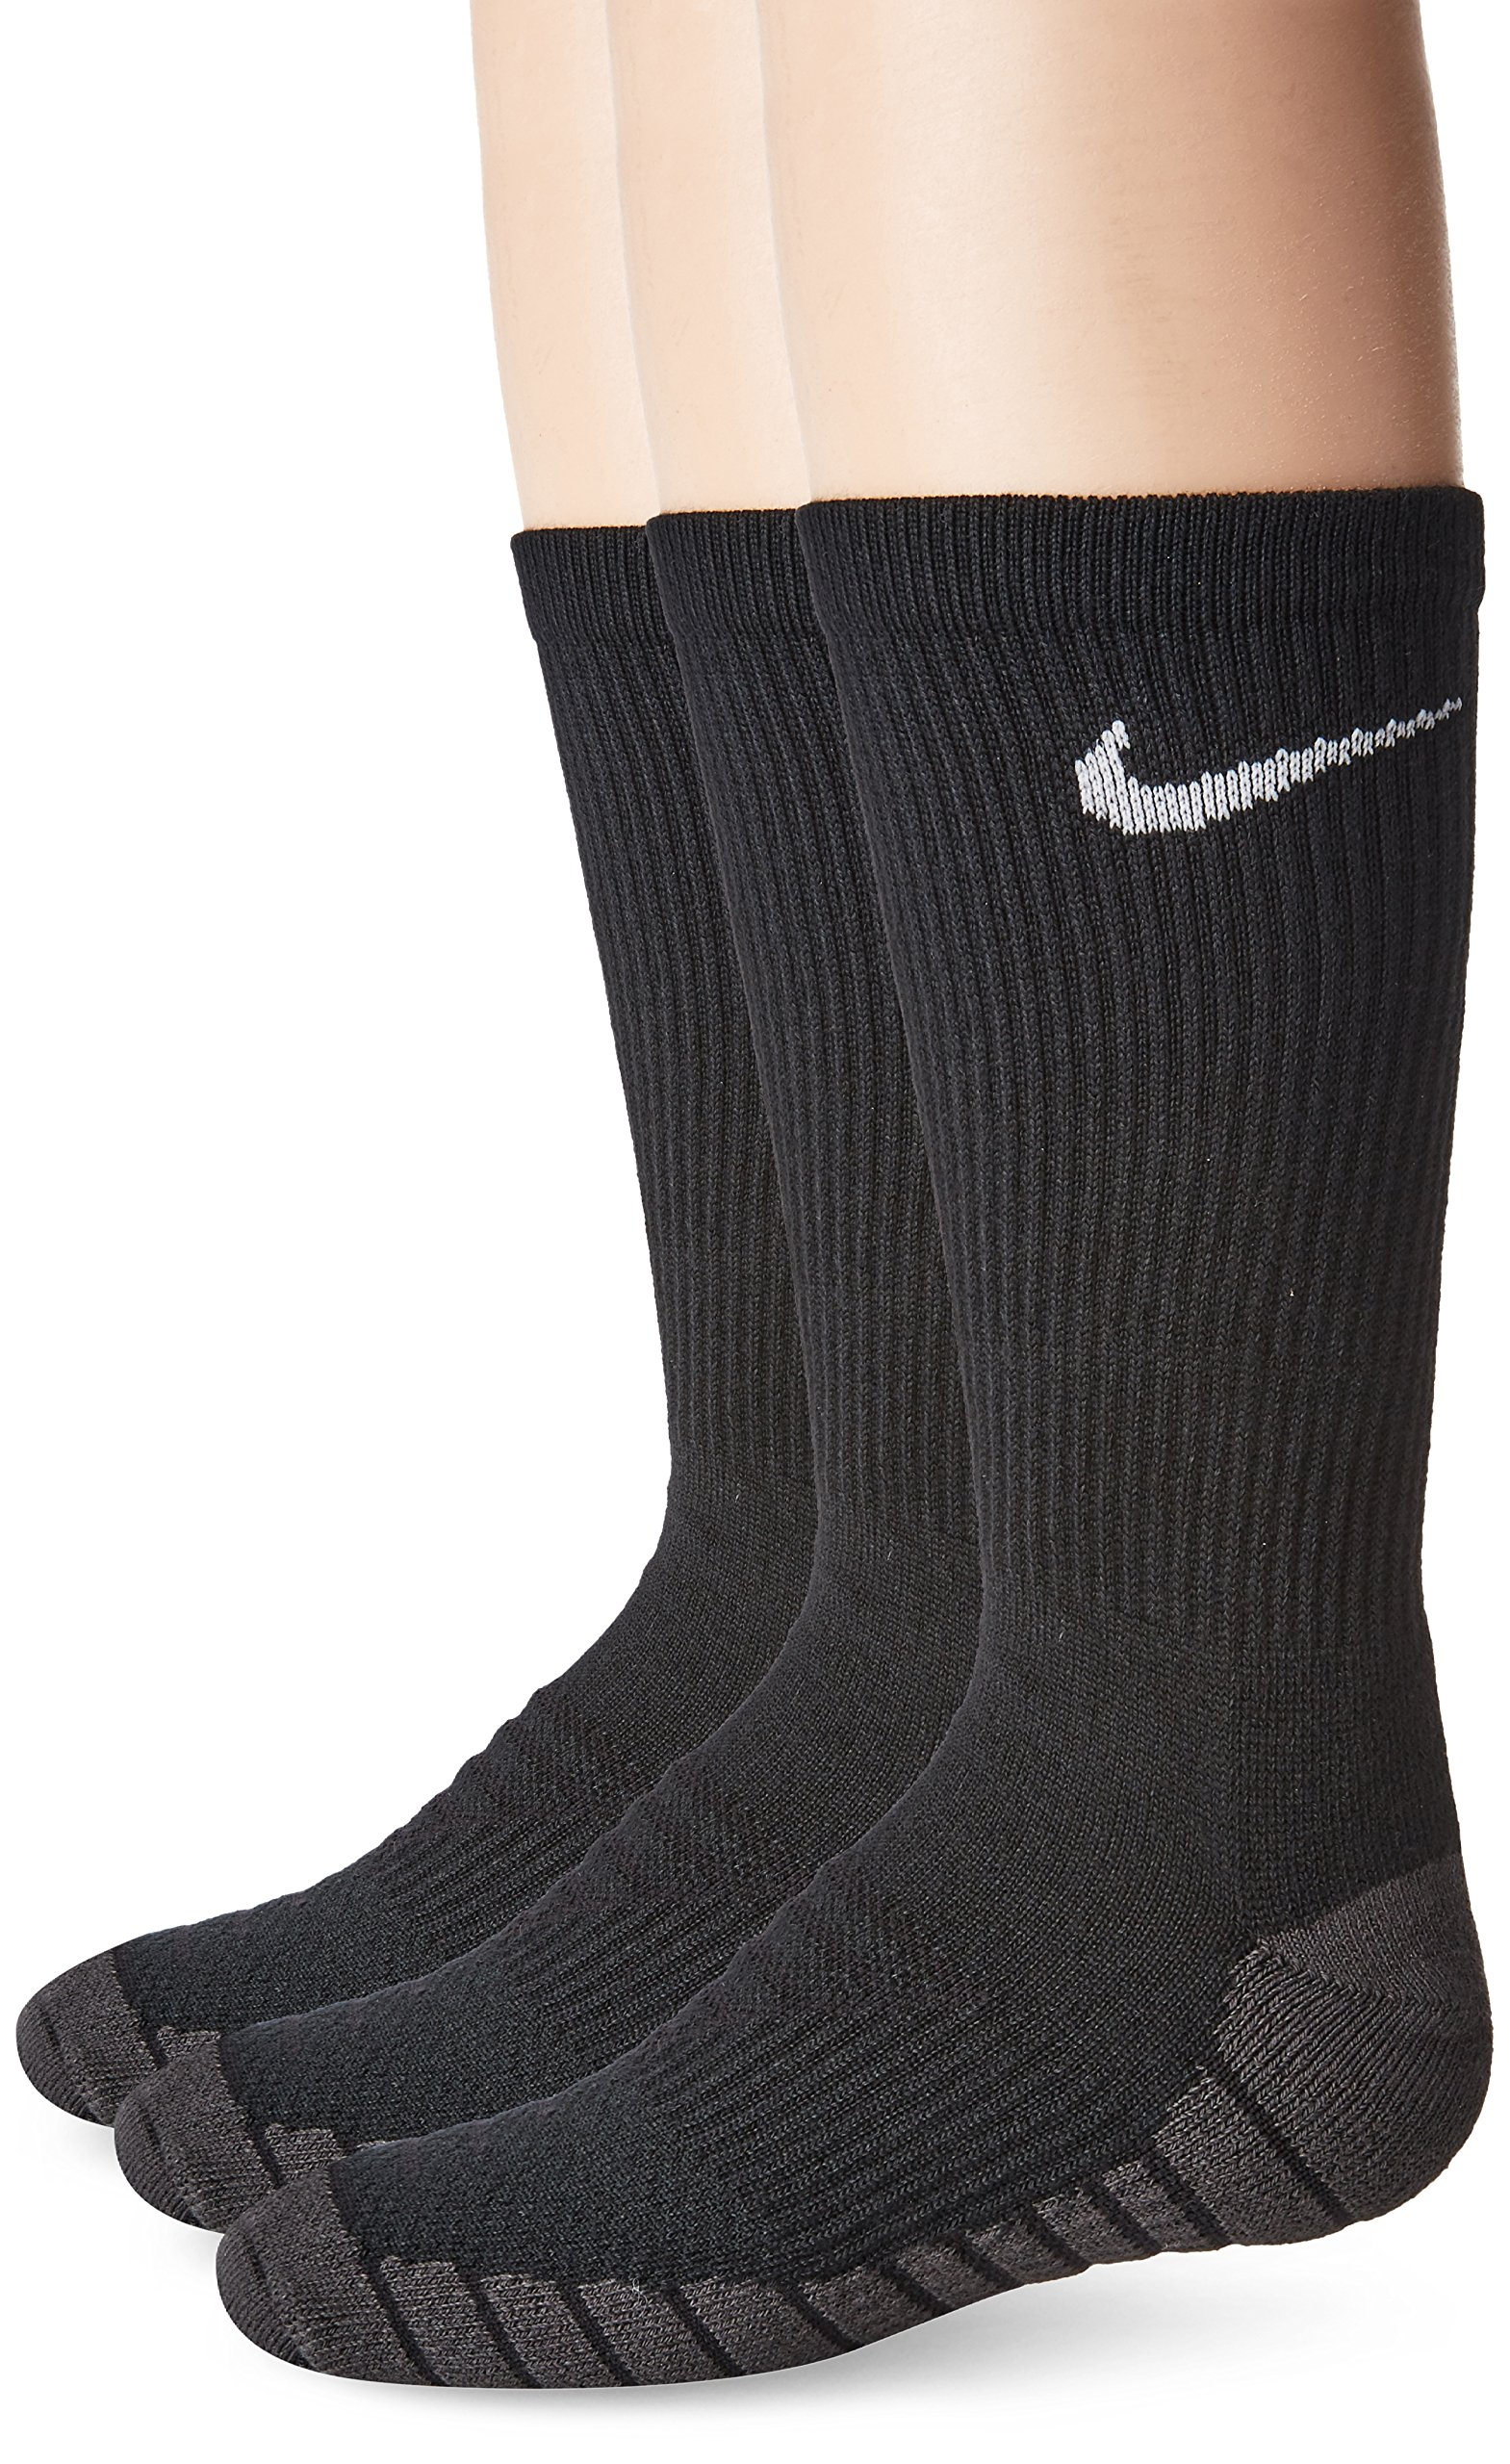 NIKE Kids' Unisex Everyday Max Cushion Crew Socks (3 Pairs), Black/Anthracite/White, Small by Nike